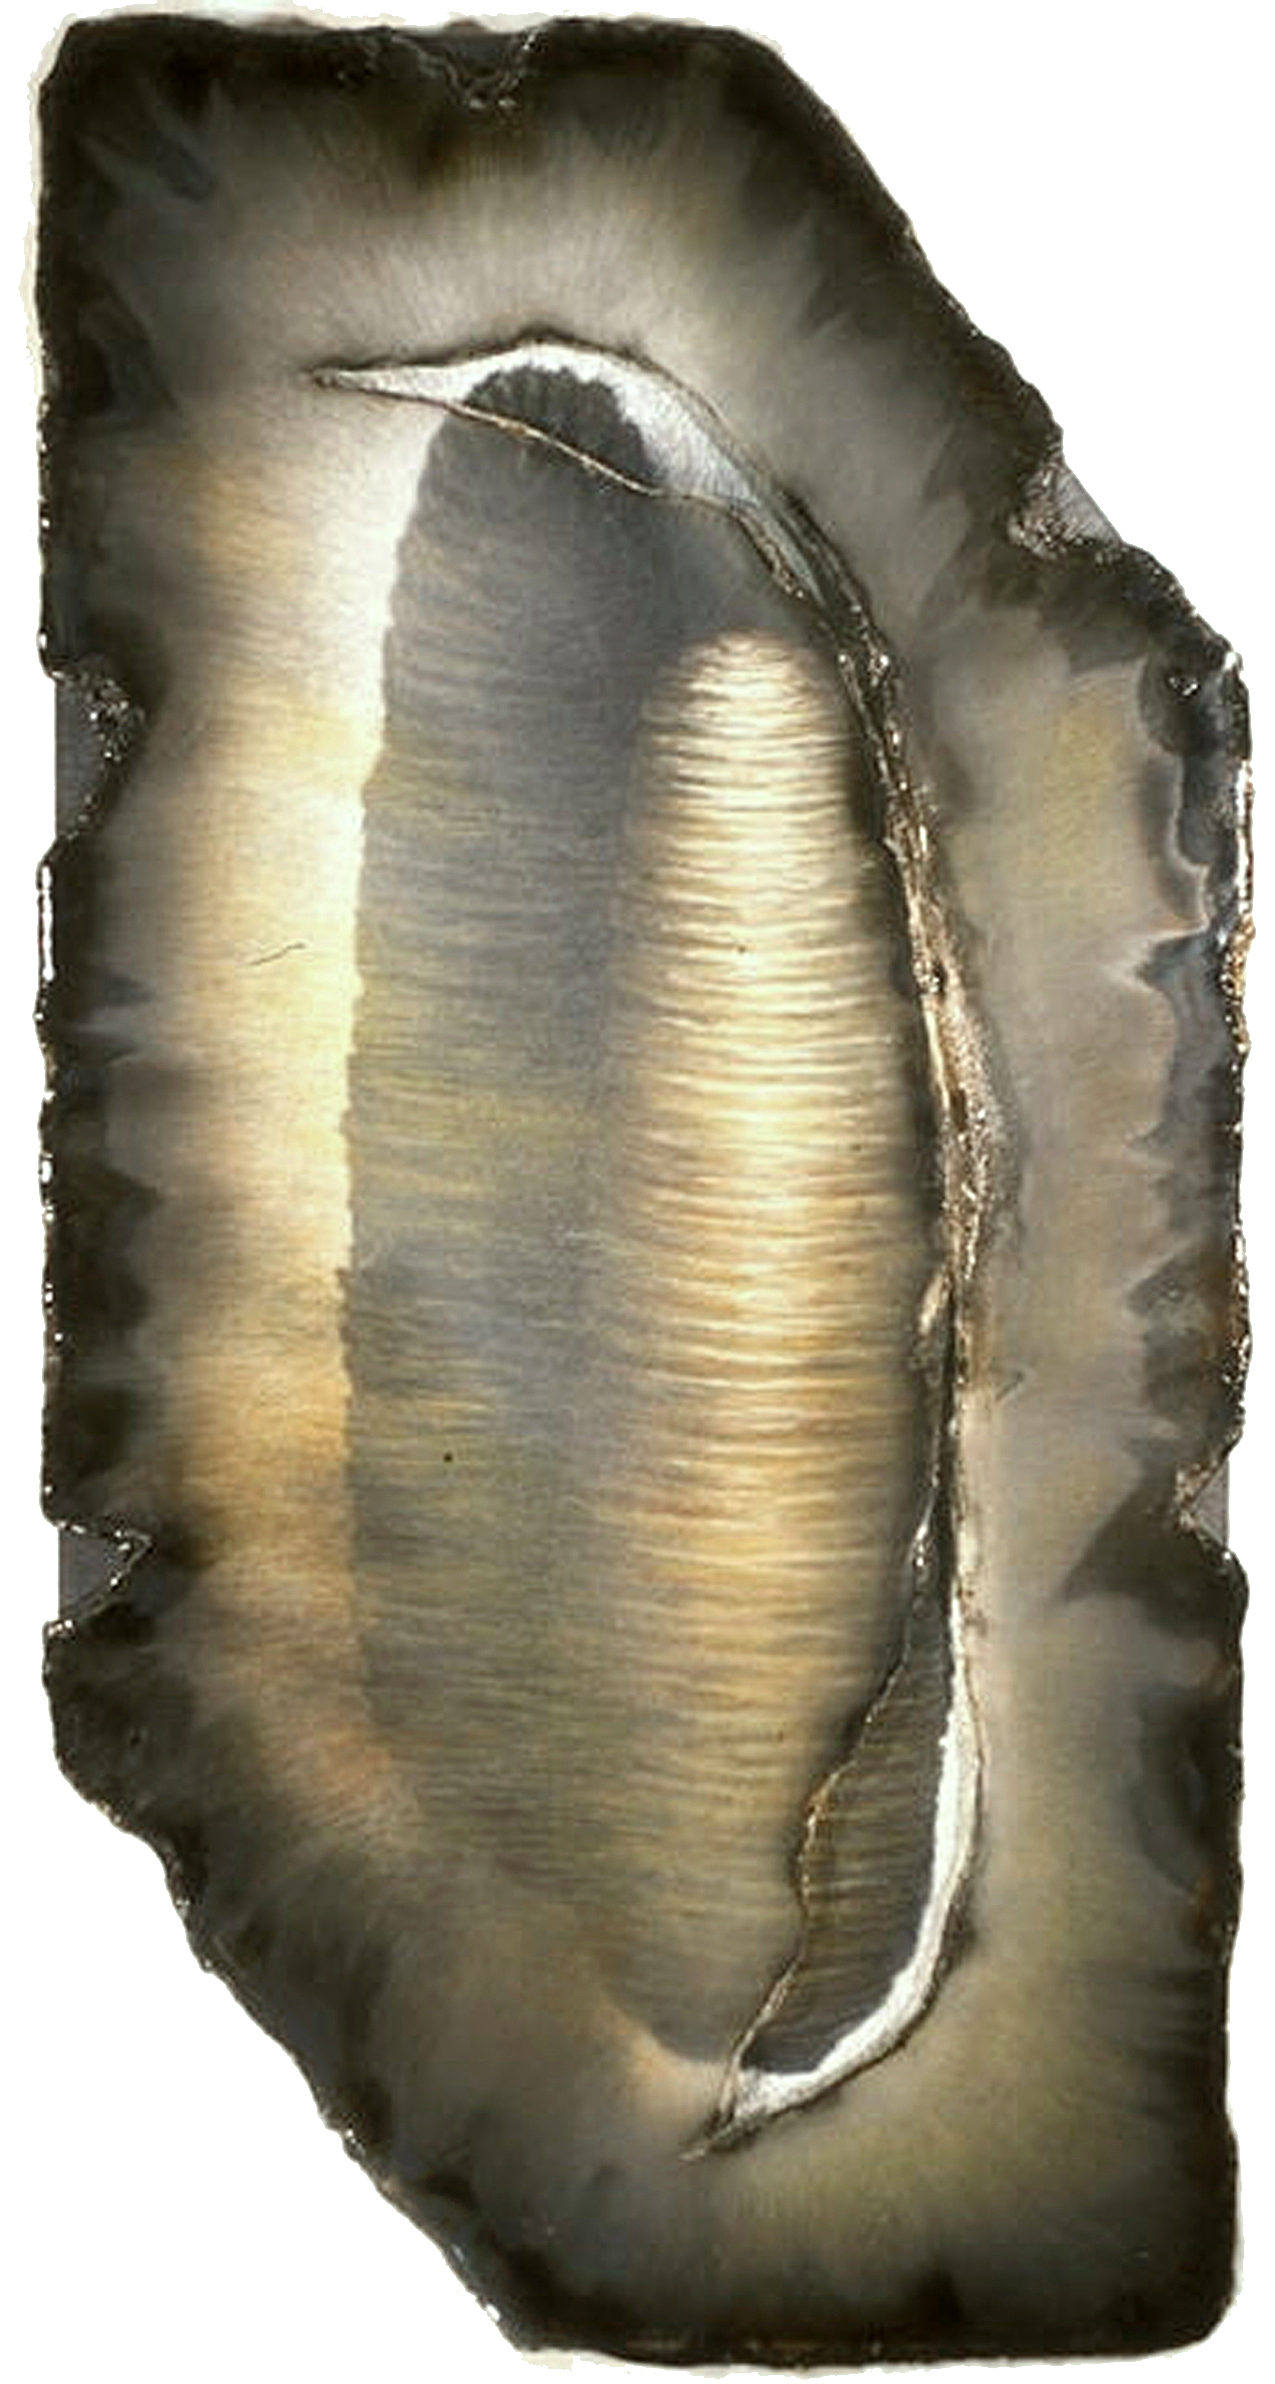 Breaking Dormancy,  2000  Graphite, kozo paper, pig gut, acrylic and prismacolor on plexi 48 x 28 x 1 inches